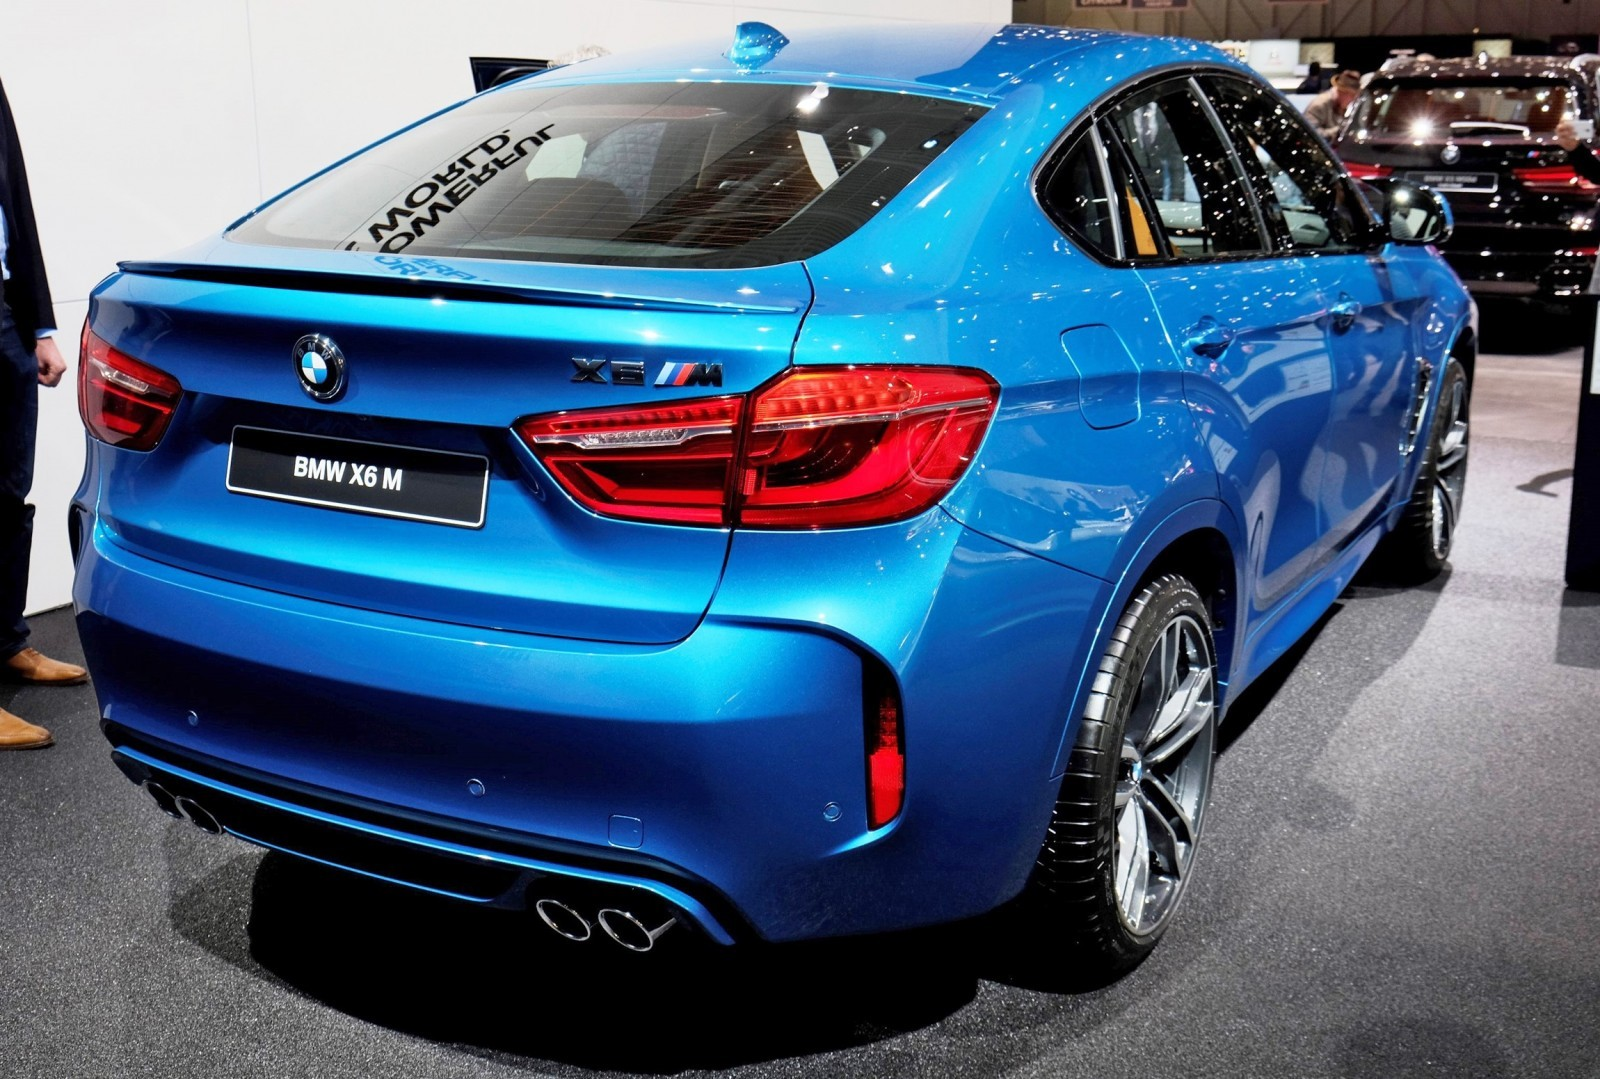 Geneva 2015 Gallery - BMW Stand In 40 Photos 31